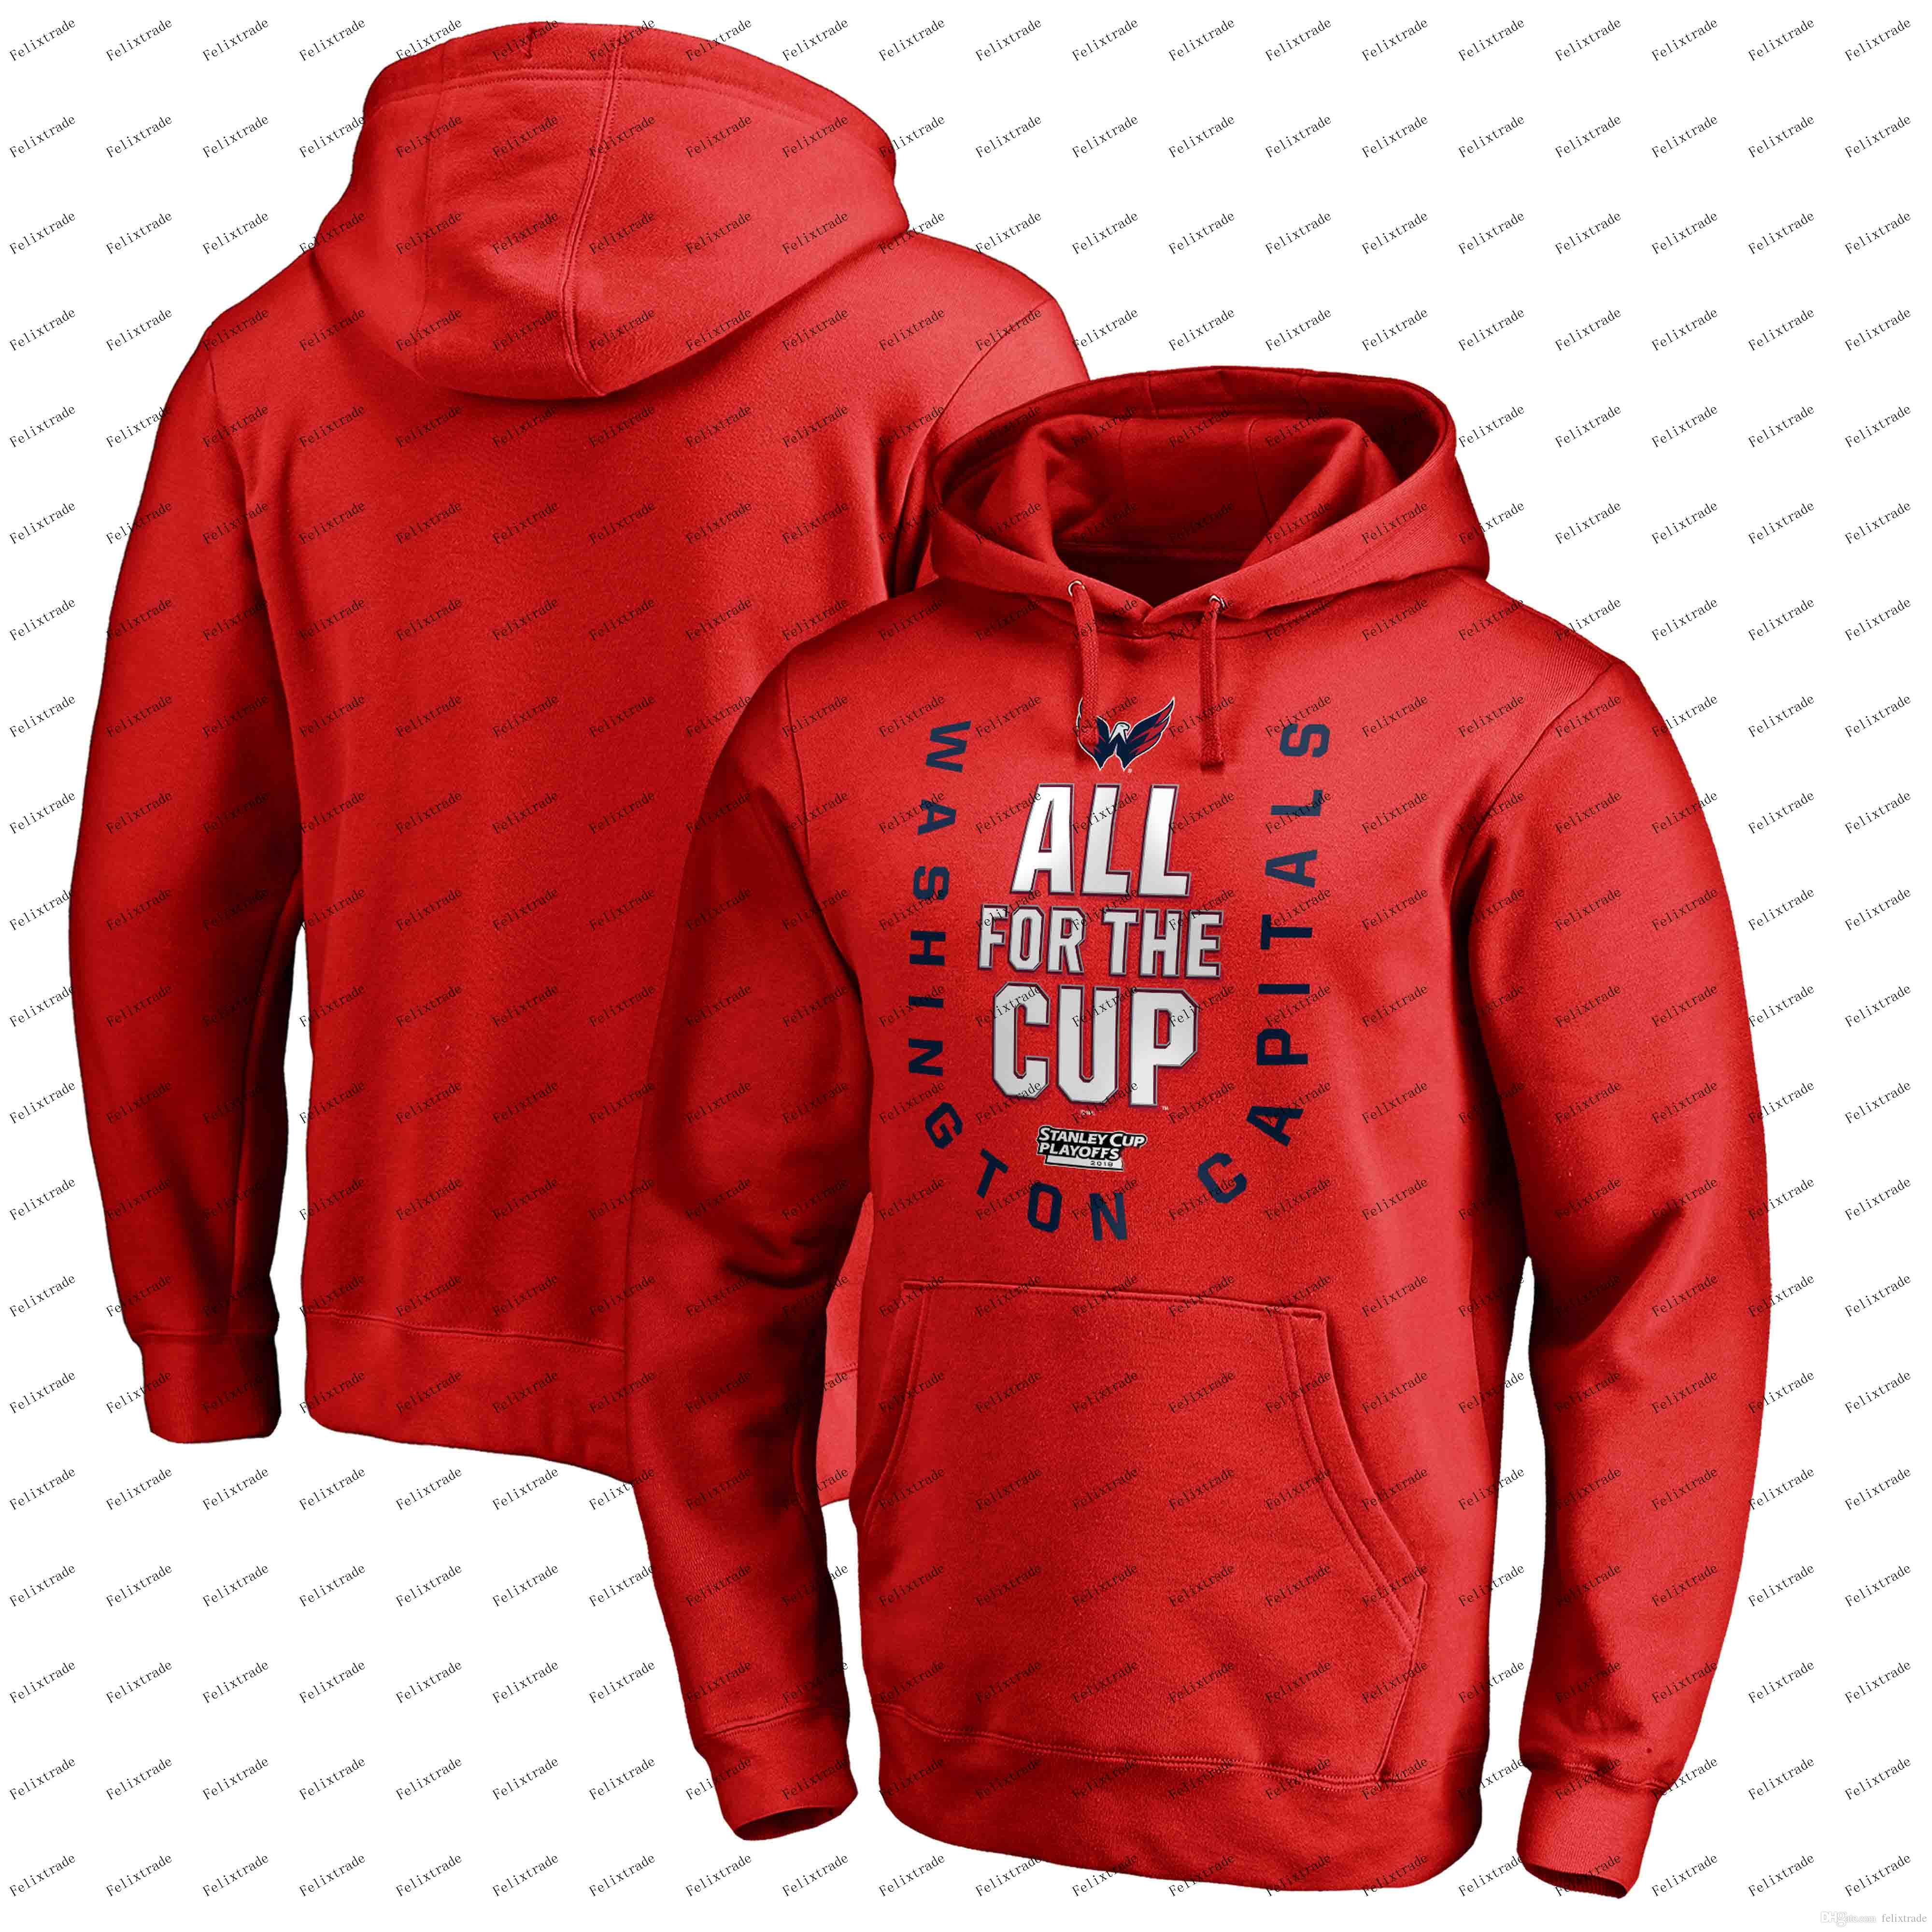 buy popular b33e9 02fbe 2017 Washington Capitals 2018 Stanley Cup Playoffs Hoodie Men Women Youth  Red Bound Behind The Net Pullover Sweatshirts From Felixtrade, $45.88   ...